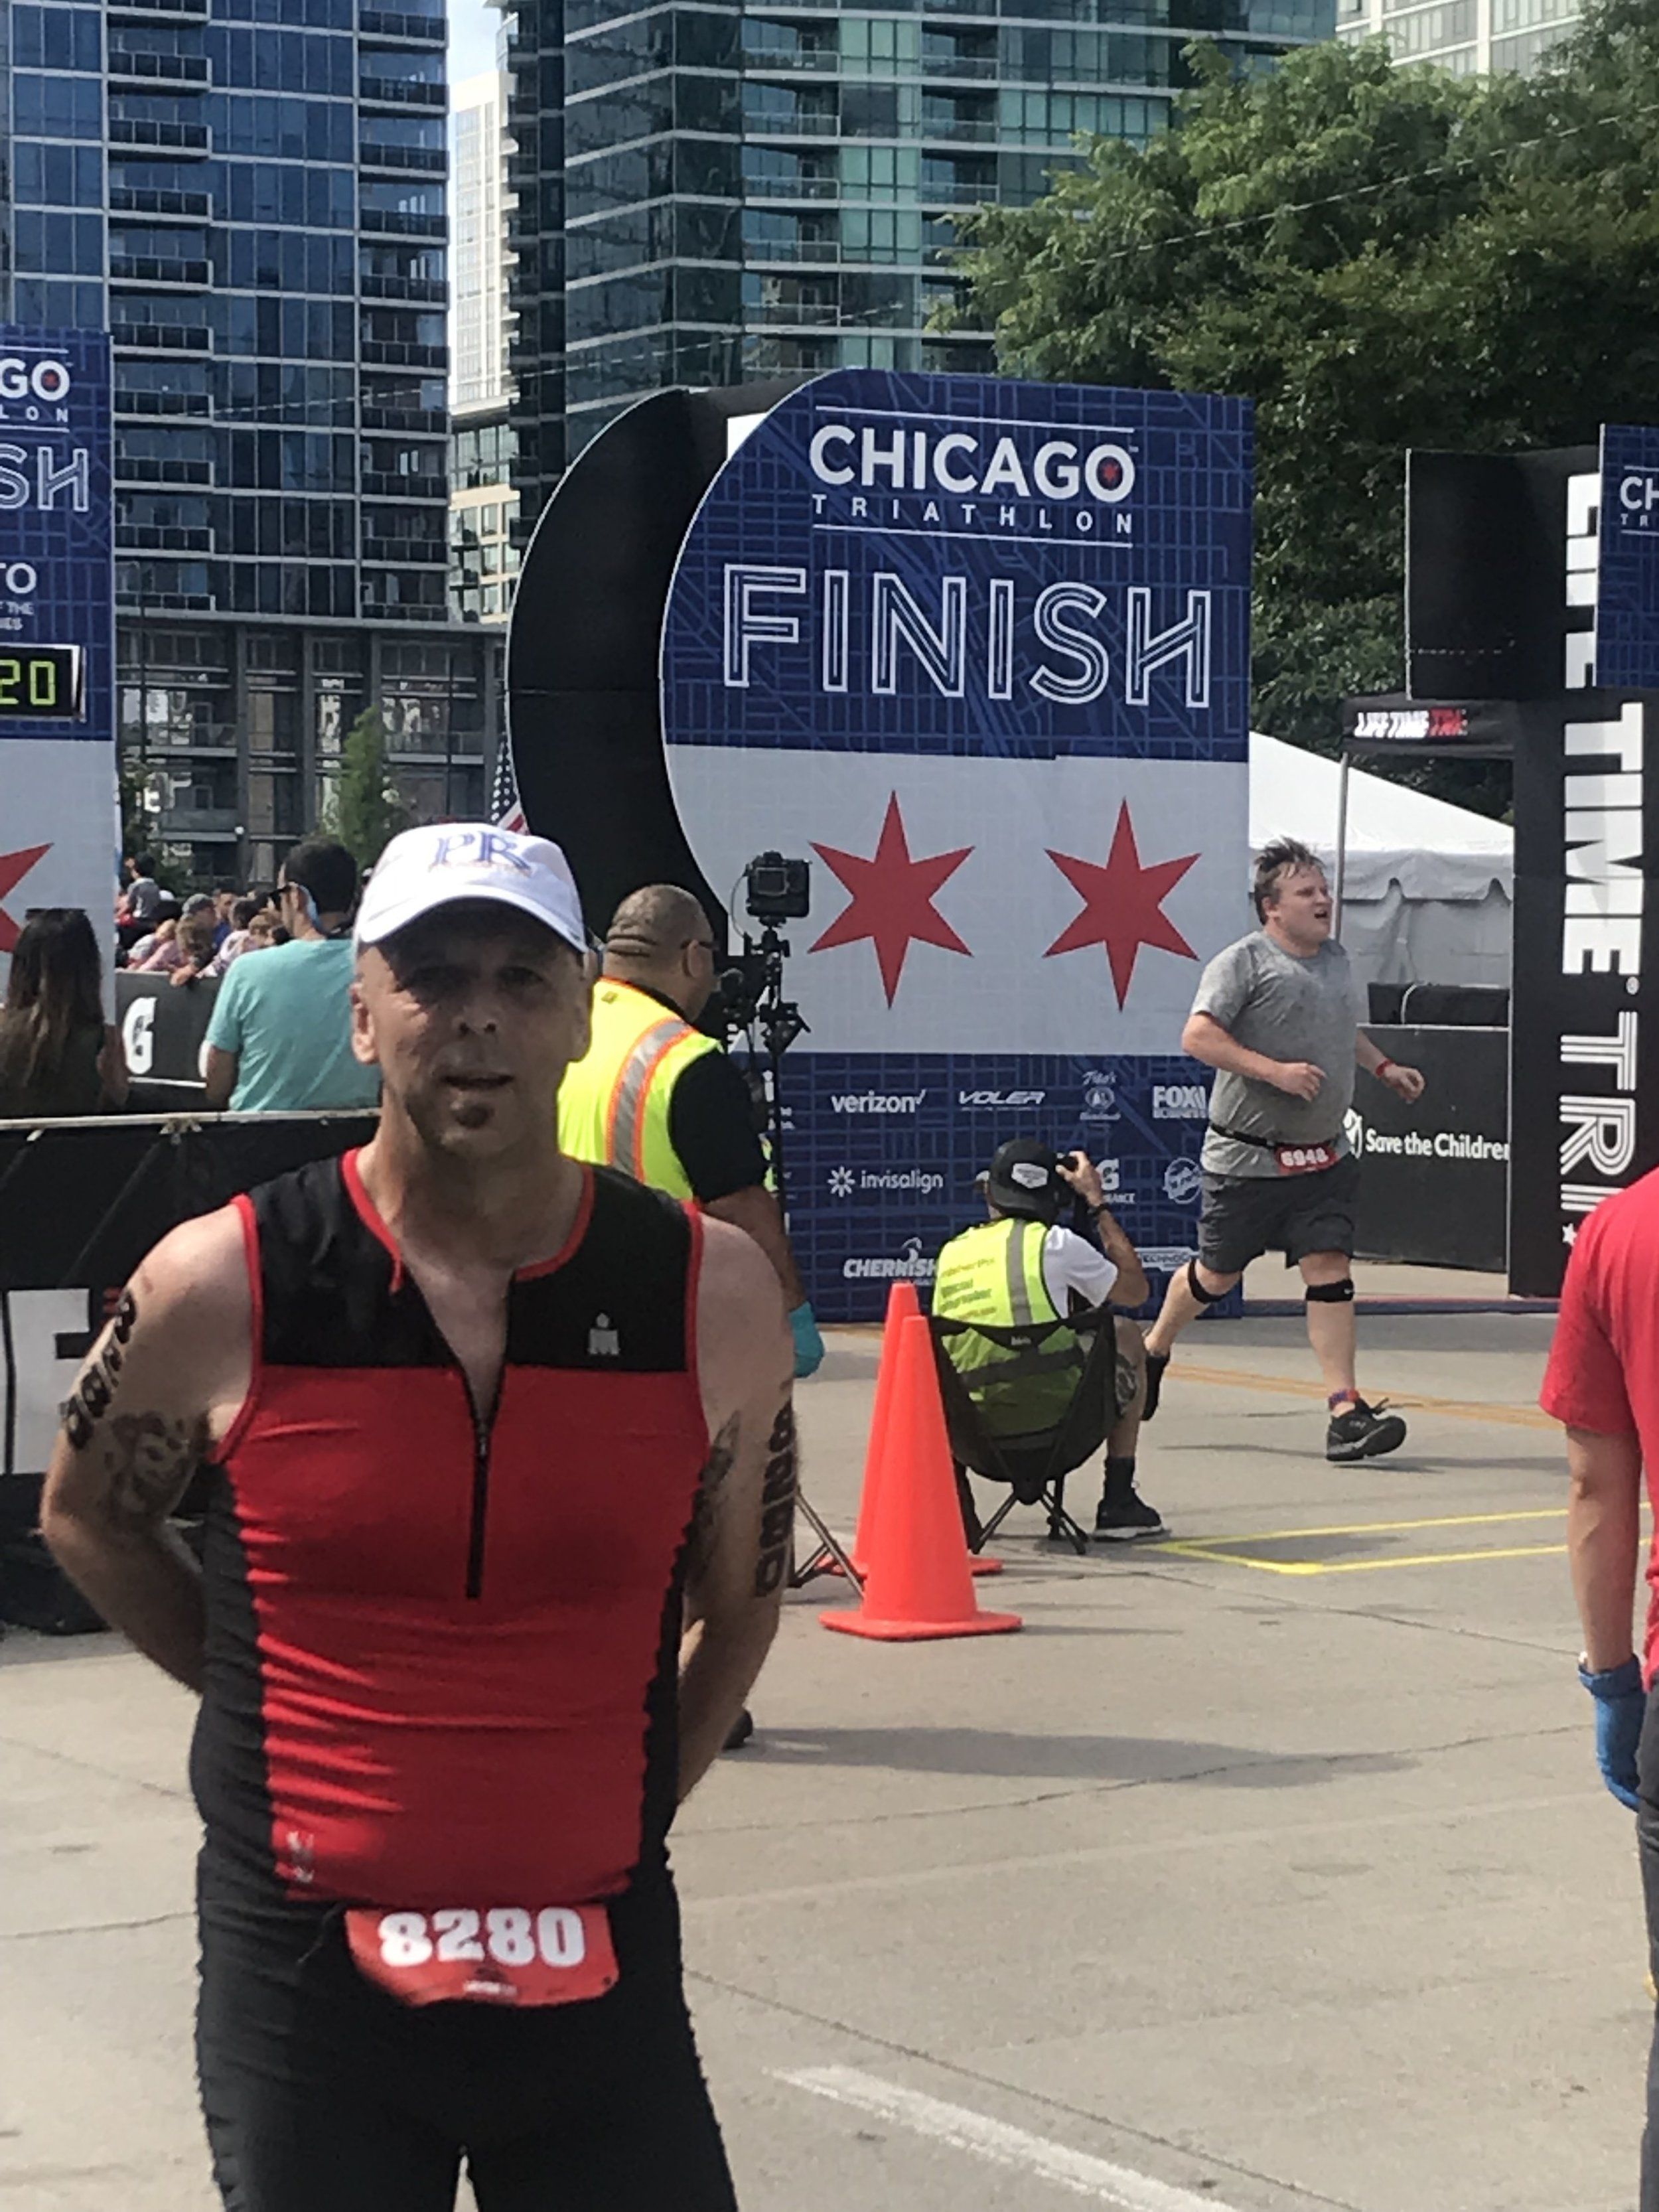 Congratulations to PR Foundation co founder Robert Kabakoff from Team PR Foundation after the 2019 Chicago Triathlon on August 25th for raising over $3,500 for military veterans and no kill animal shelters